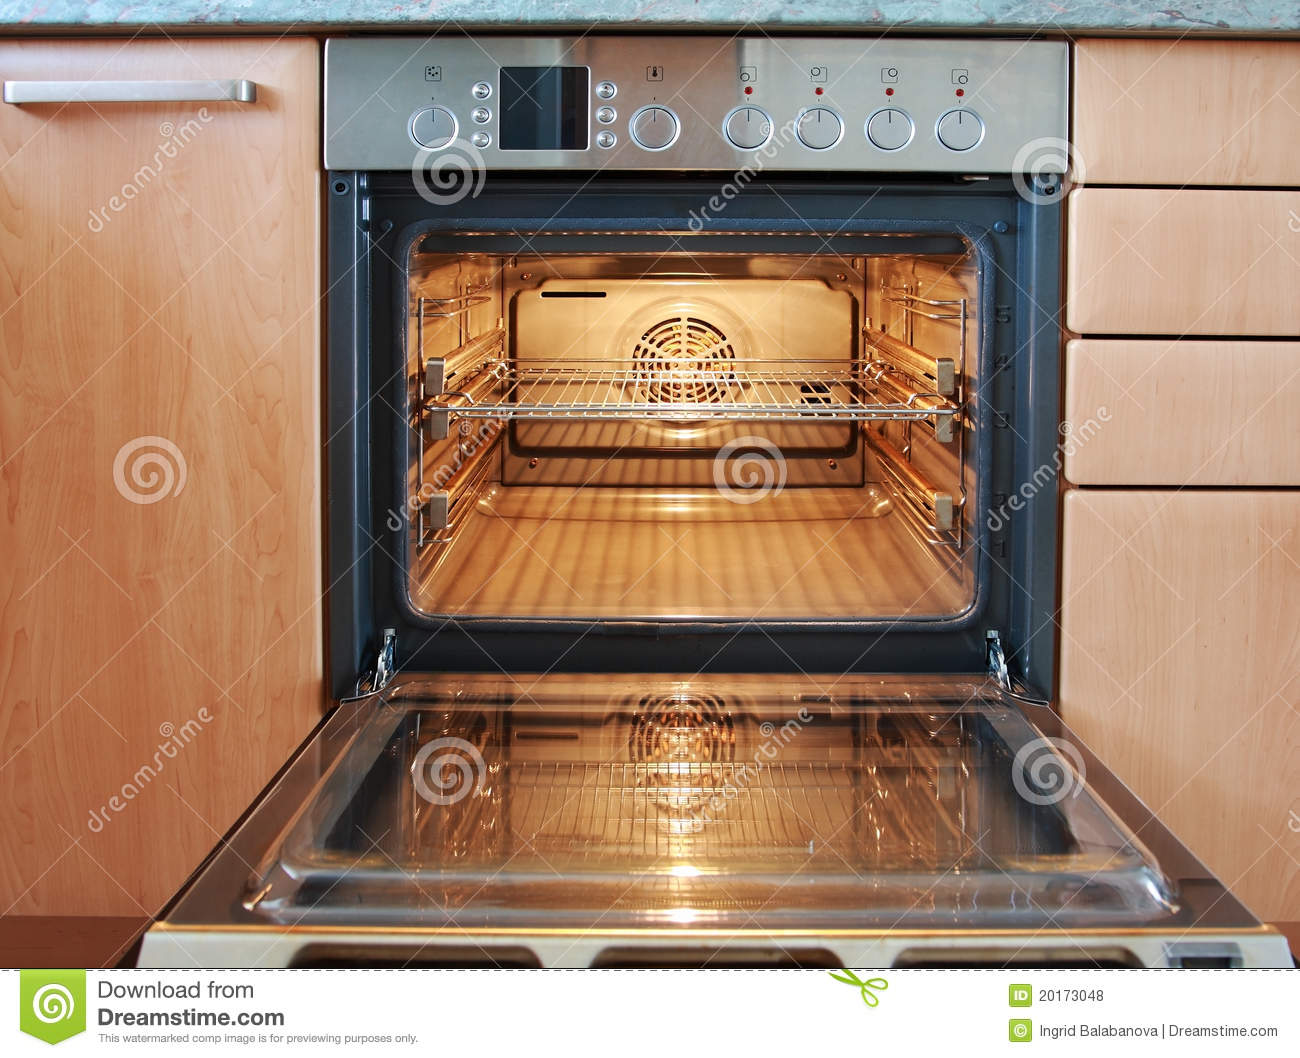 Open Oven Royalty Free Stock Photos Image 20173048